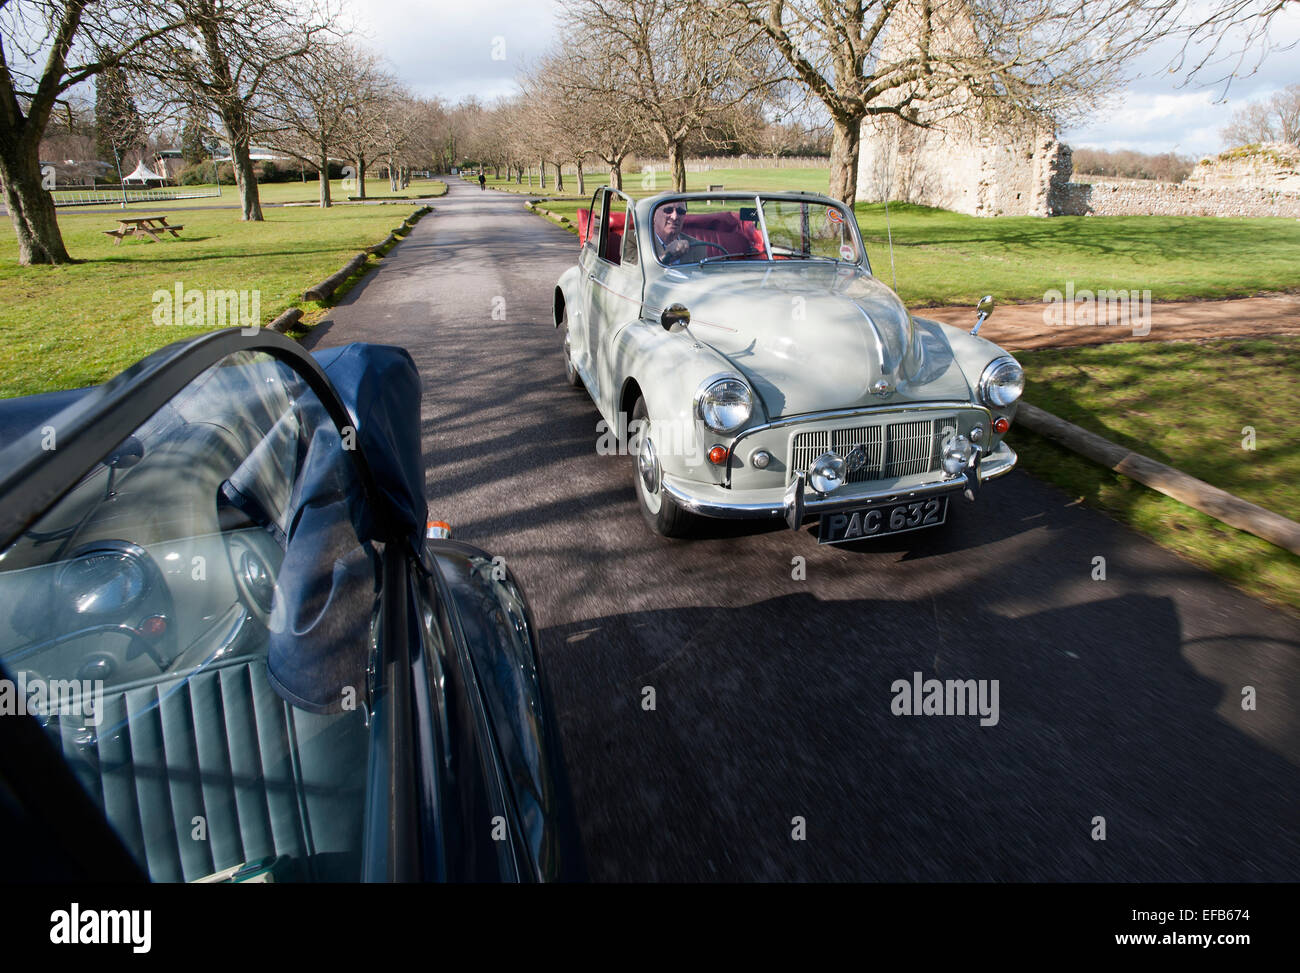 Classic Cars Driving Stock Photos & Classic Cars Driving Stock ...